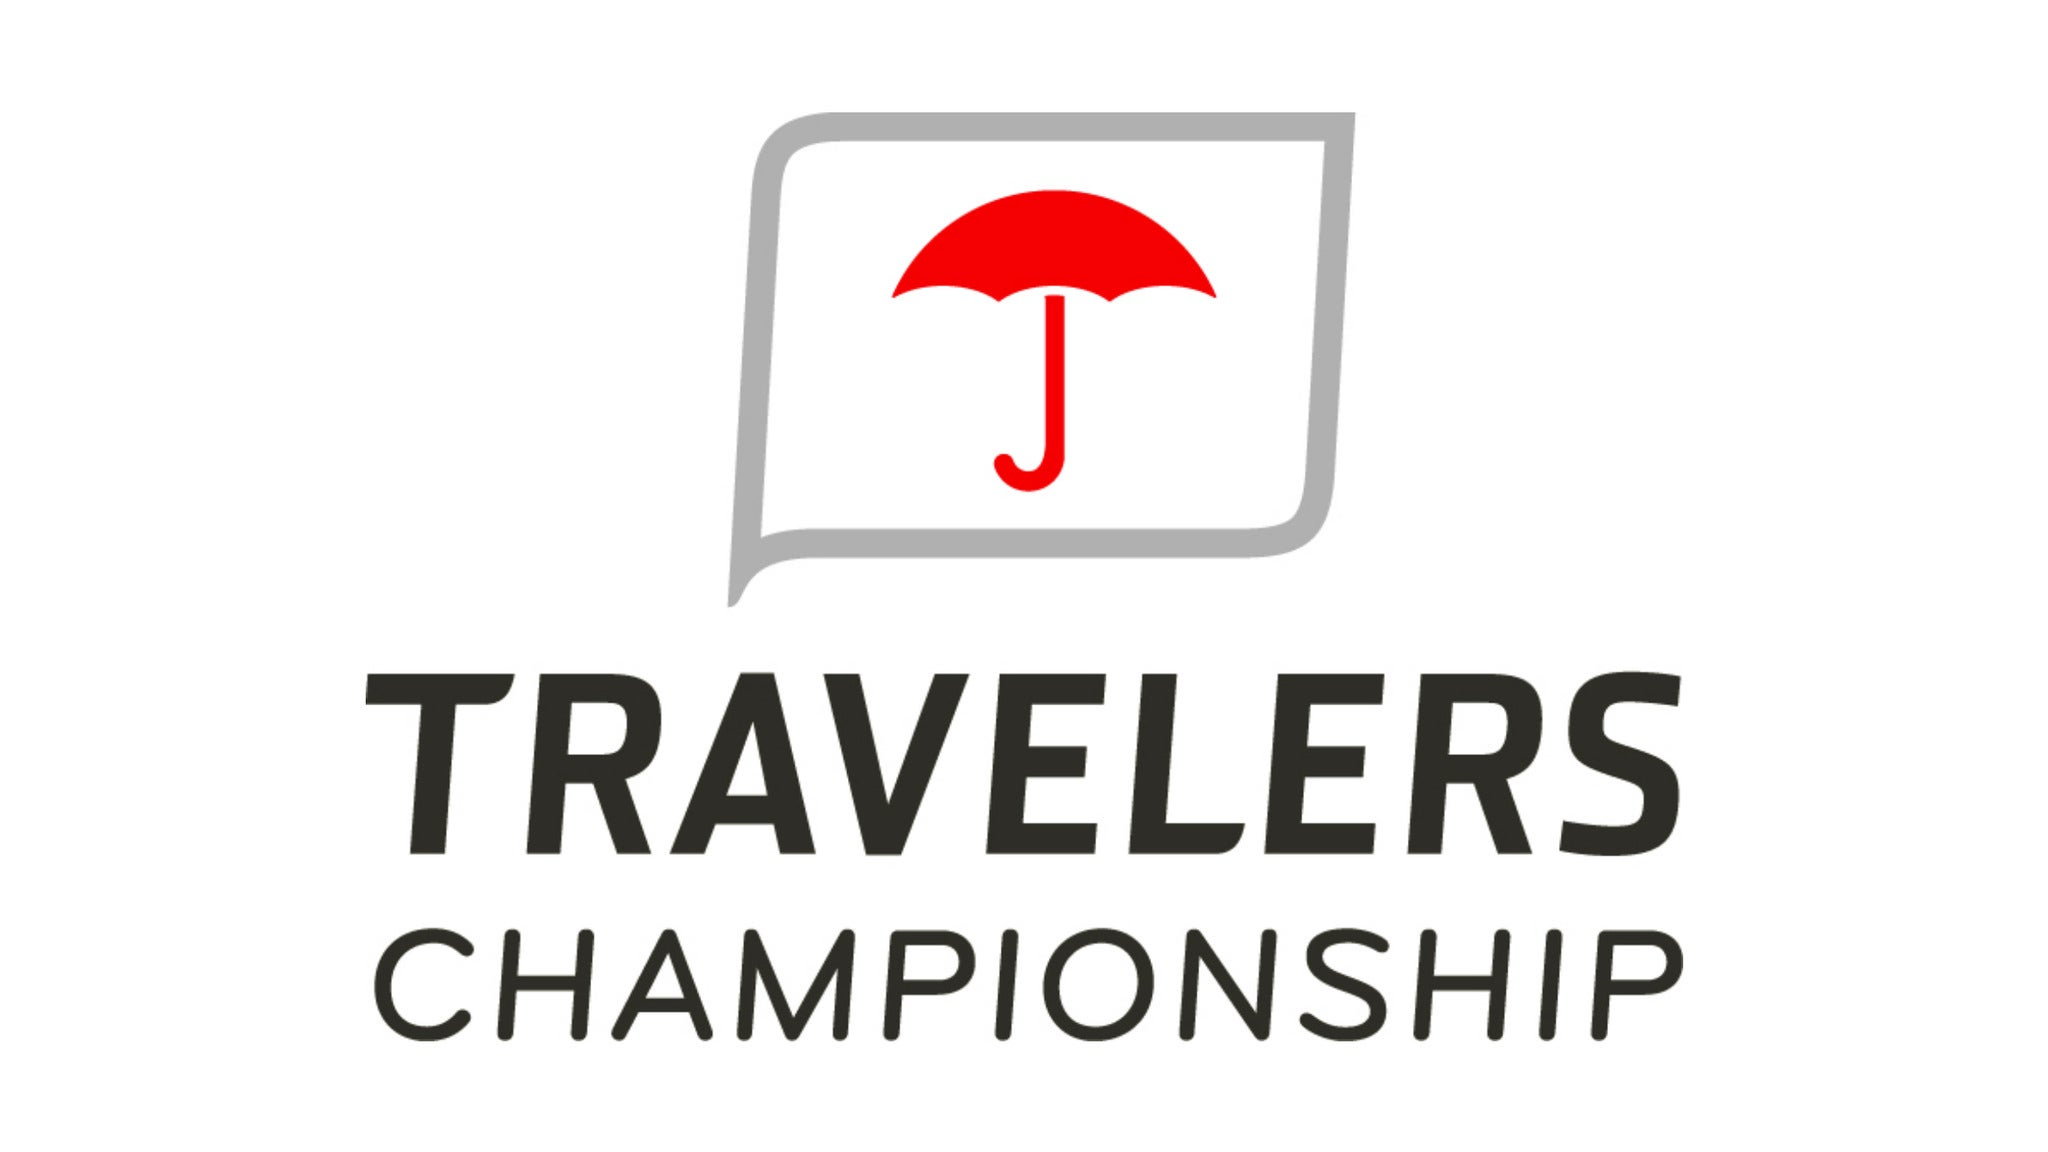 Travelers Championship: Tuesday Admission